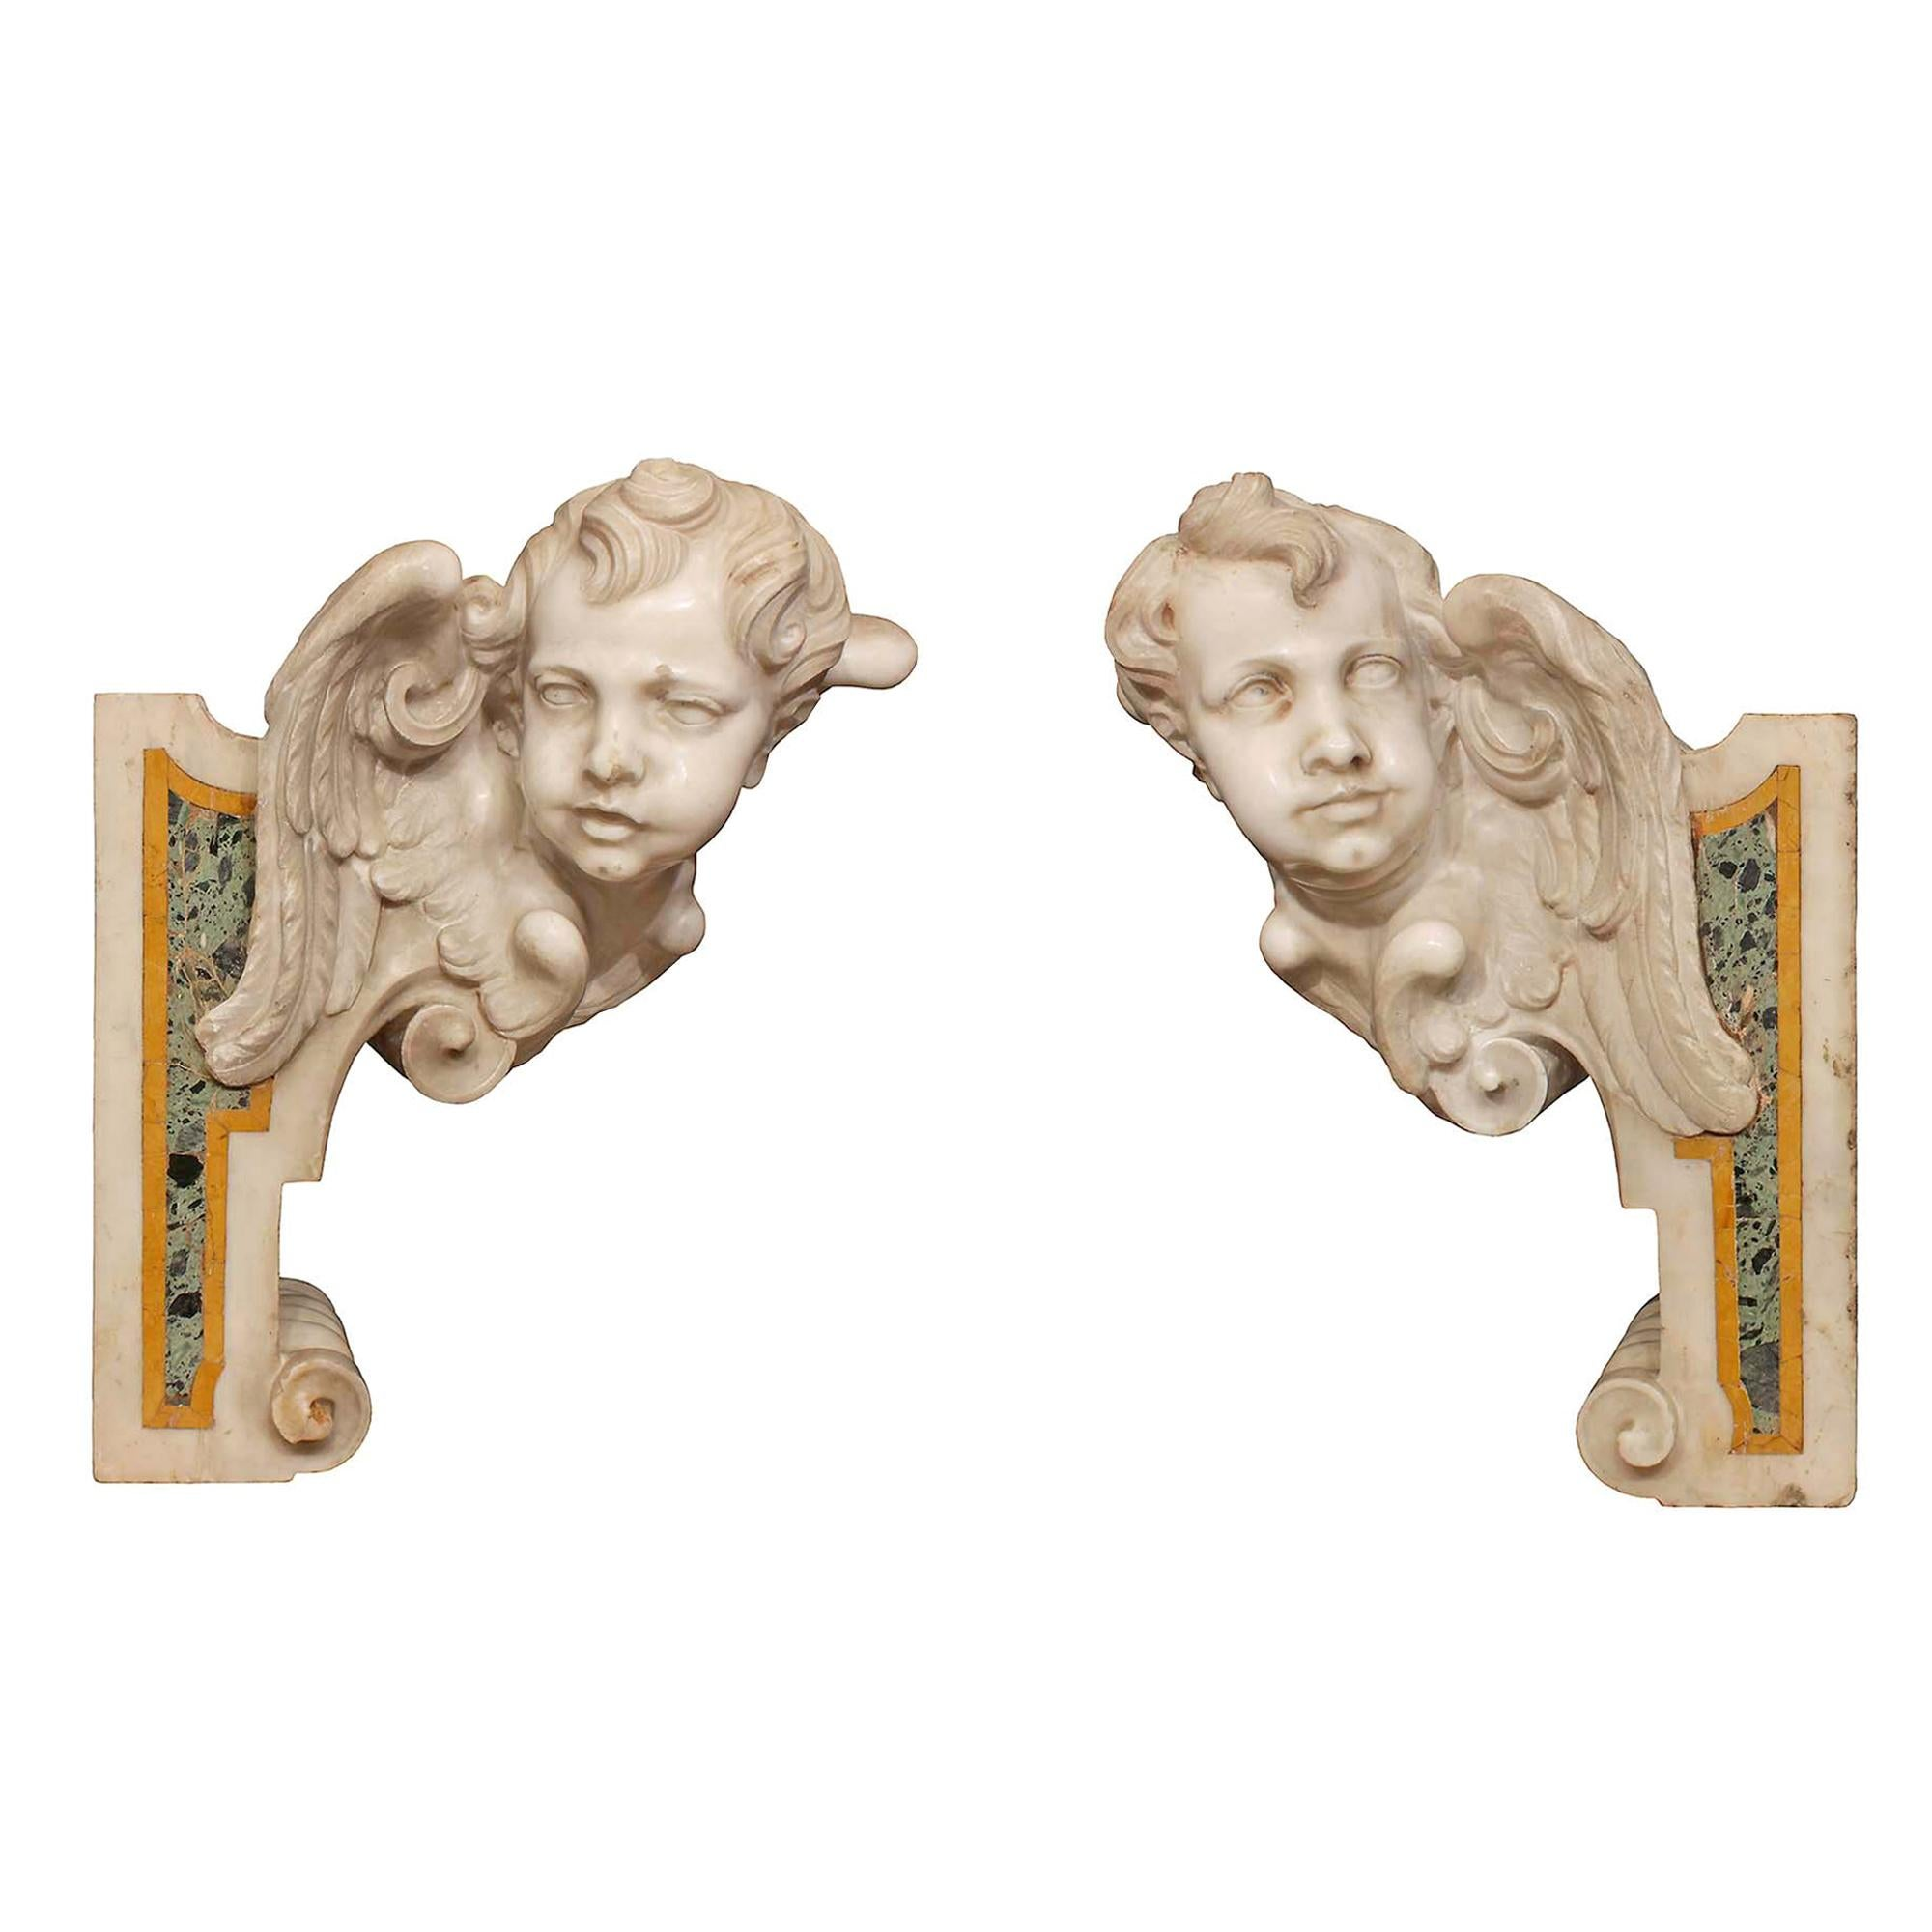 Pair of Italian 17th Century Baroque Period Marble Architectural Elements